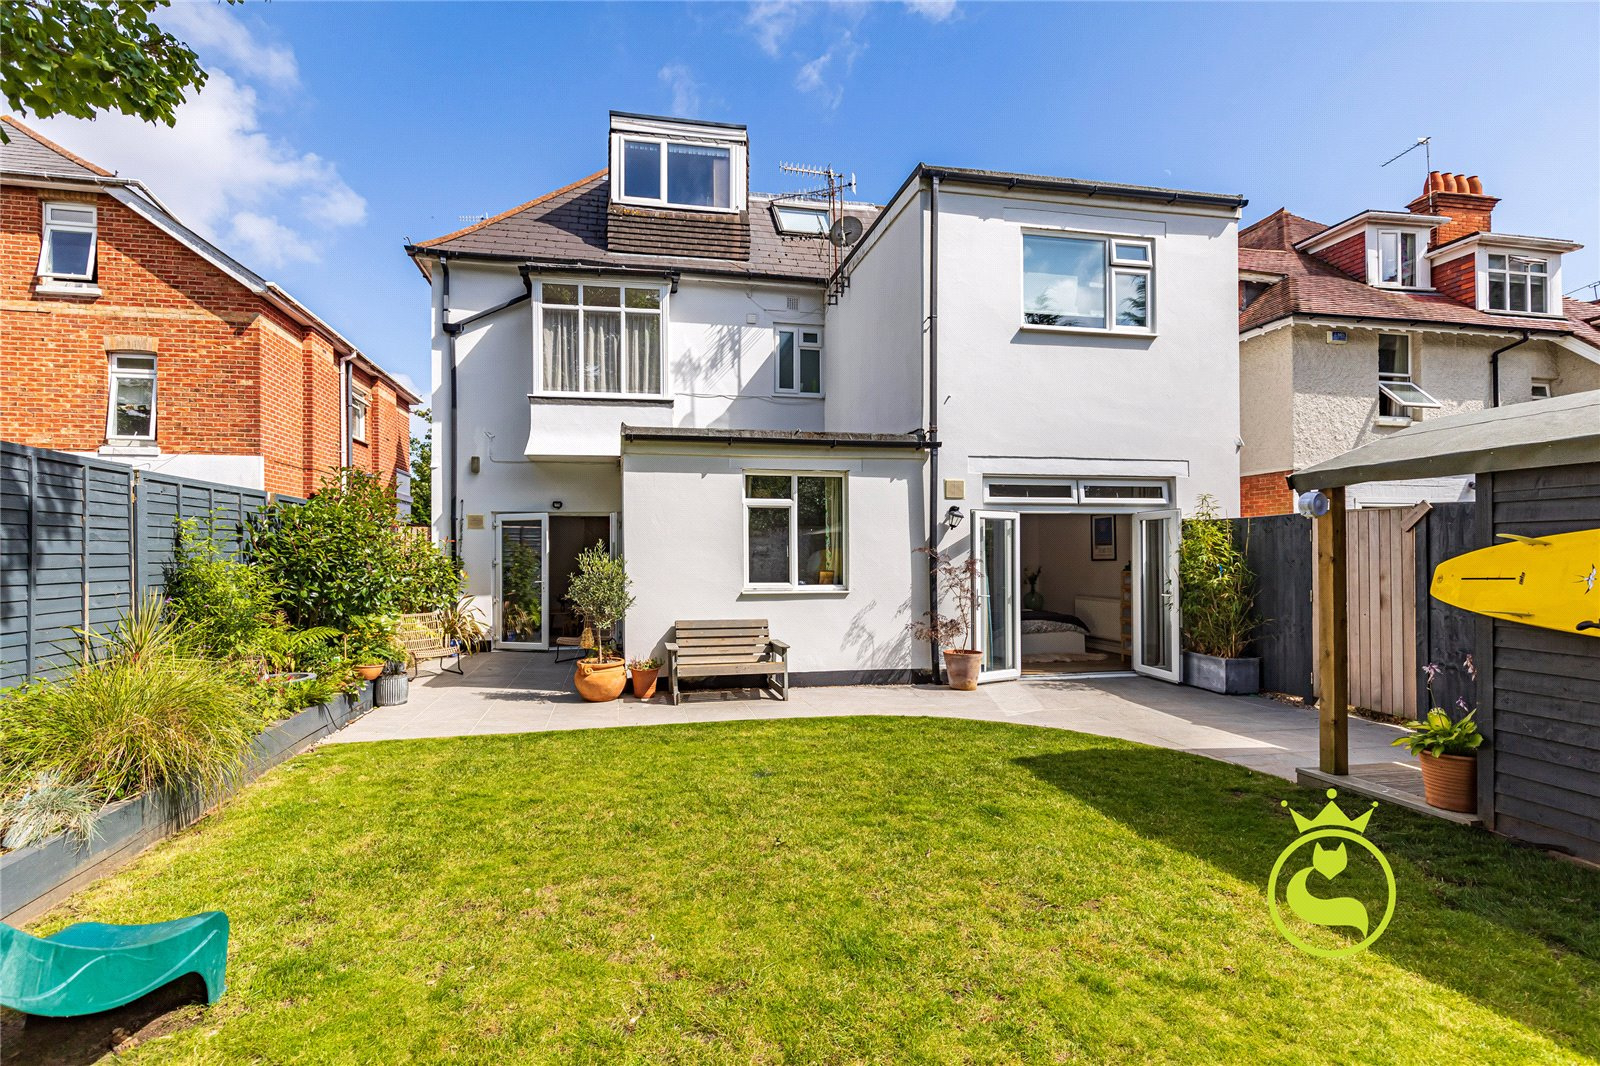 2 bed apartment for sale in Westbourne Park Road, Westbourne, BH4